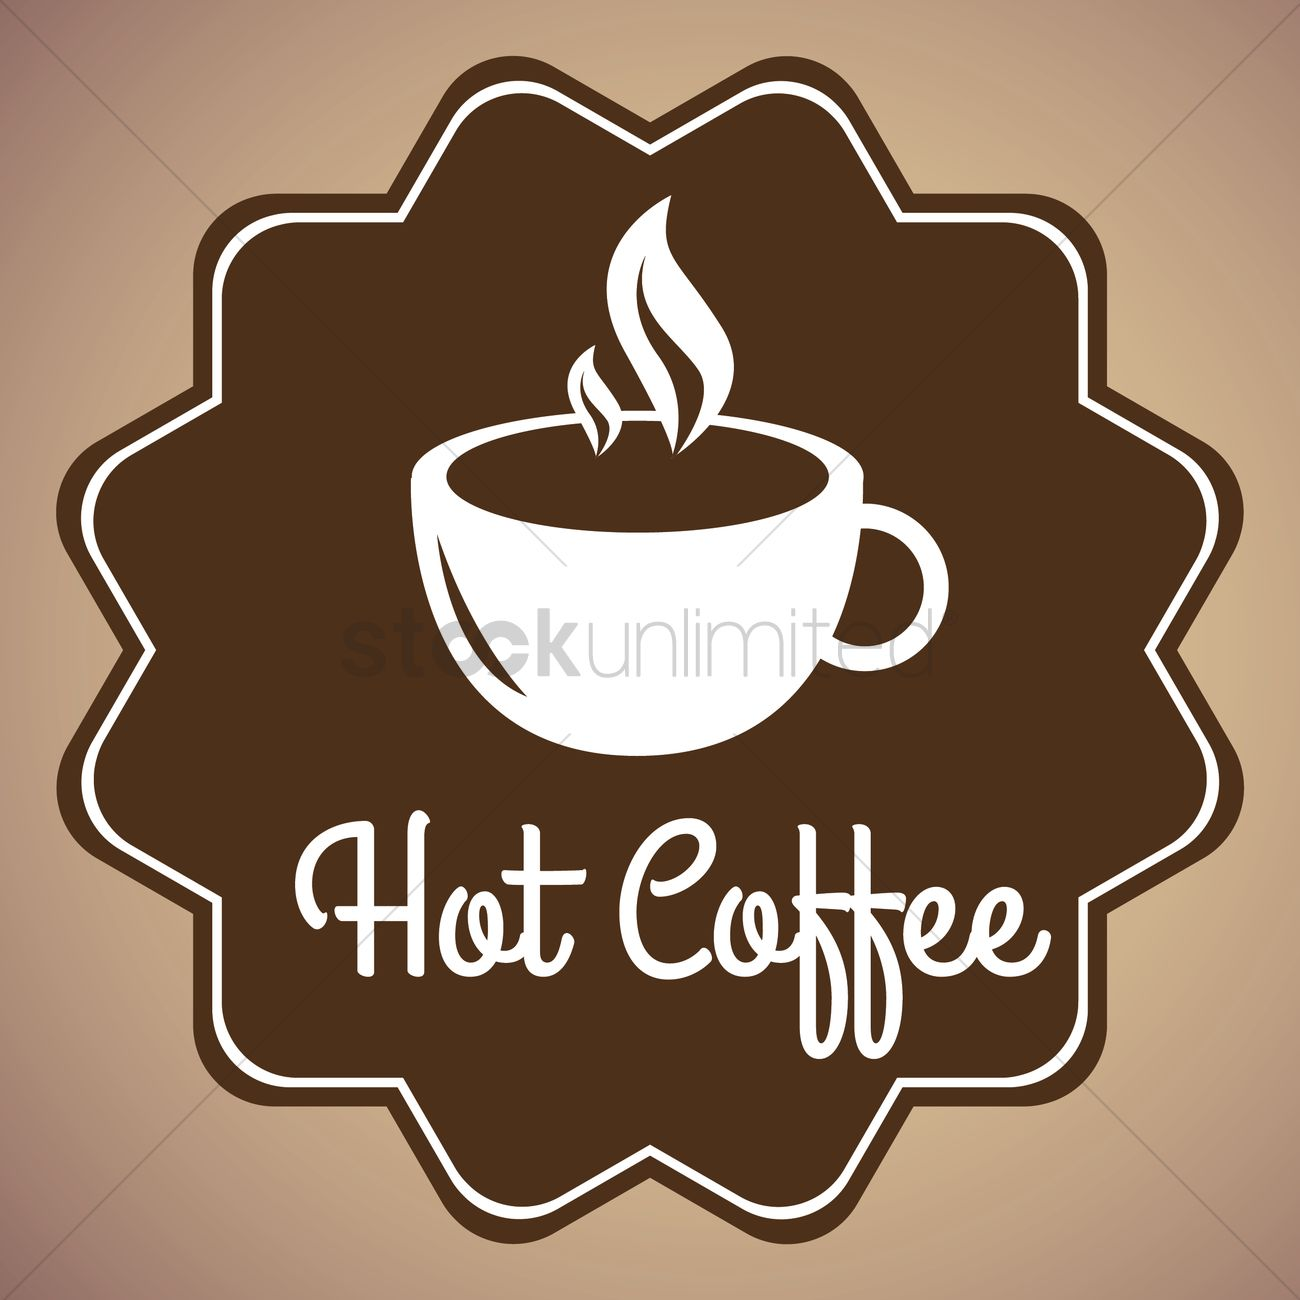 Coffee shop wallpaper Vector Image   1811771 StockUnlimited 1300x1300